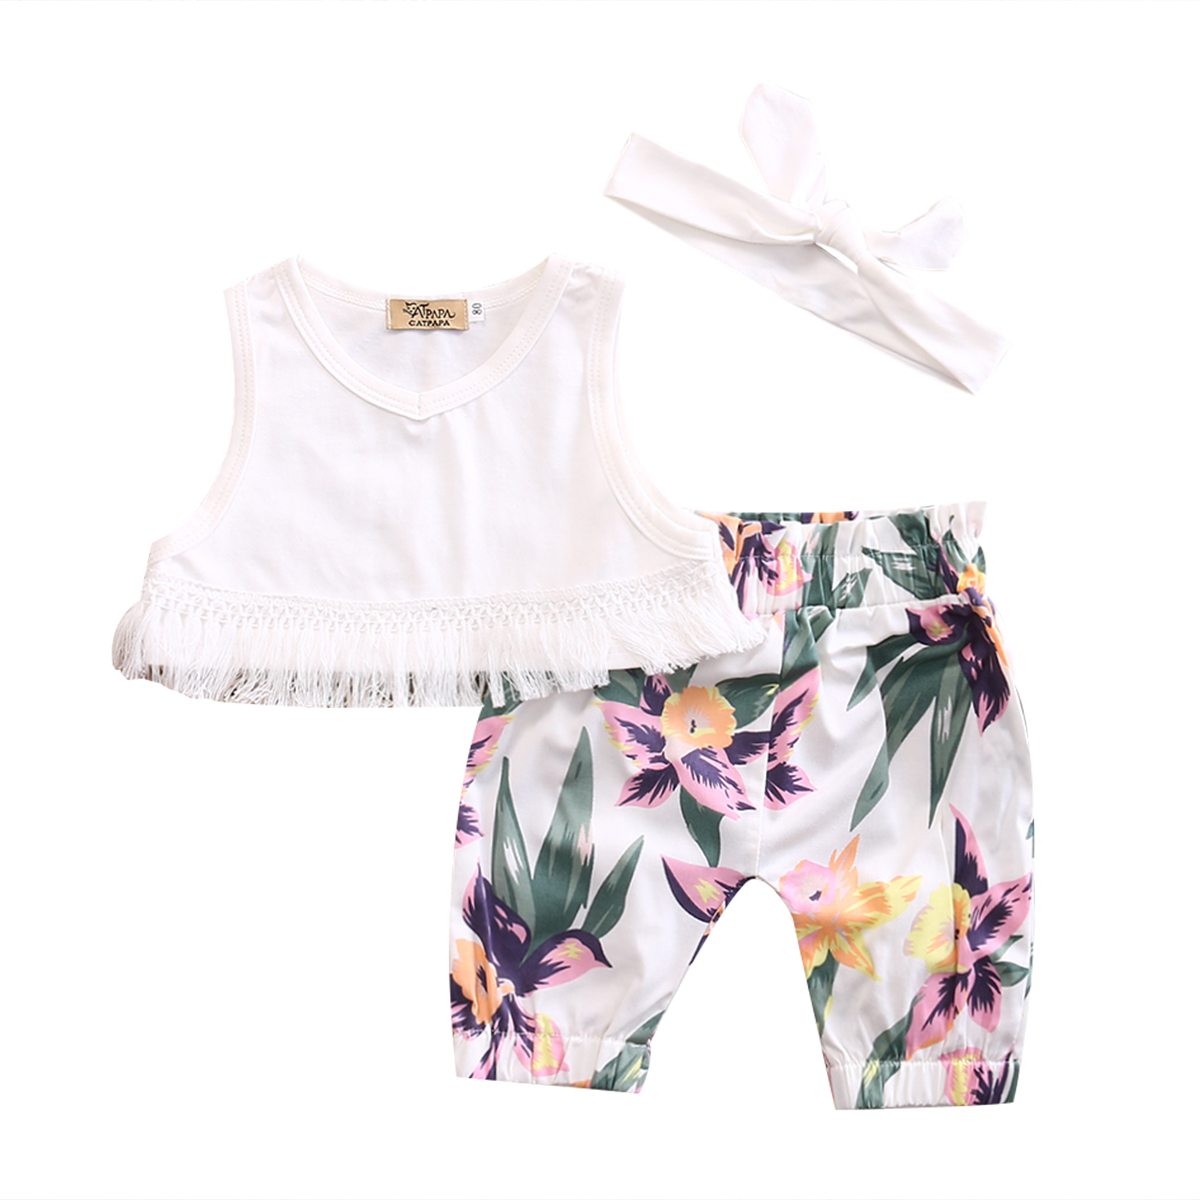 Cute Newborn Baby Girl Clothes 2017 Summer Sleeveless Tassel Crop Tops Vest +Floral Printed Pant Trouser Children Clothing Set 0 24m floral baby girl clothes set 2017 summer sleeveless ruffles crop tops baby bloomers shorts 2pcs outfits children sunsuit